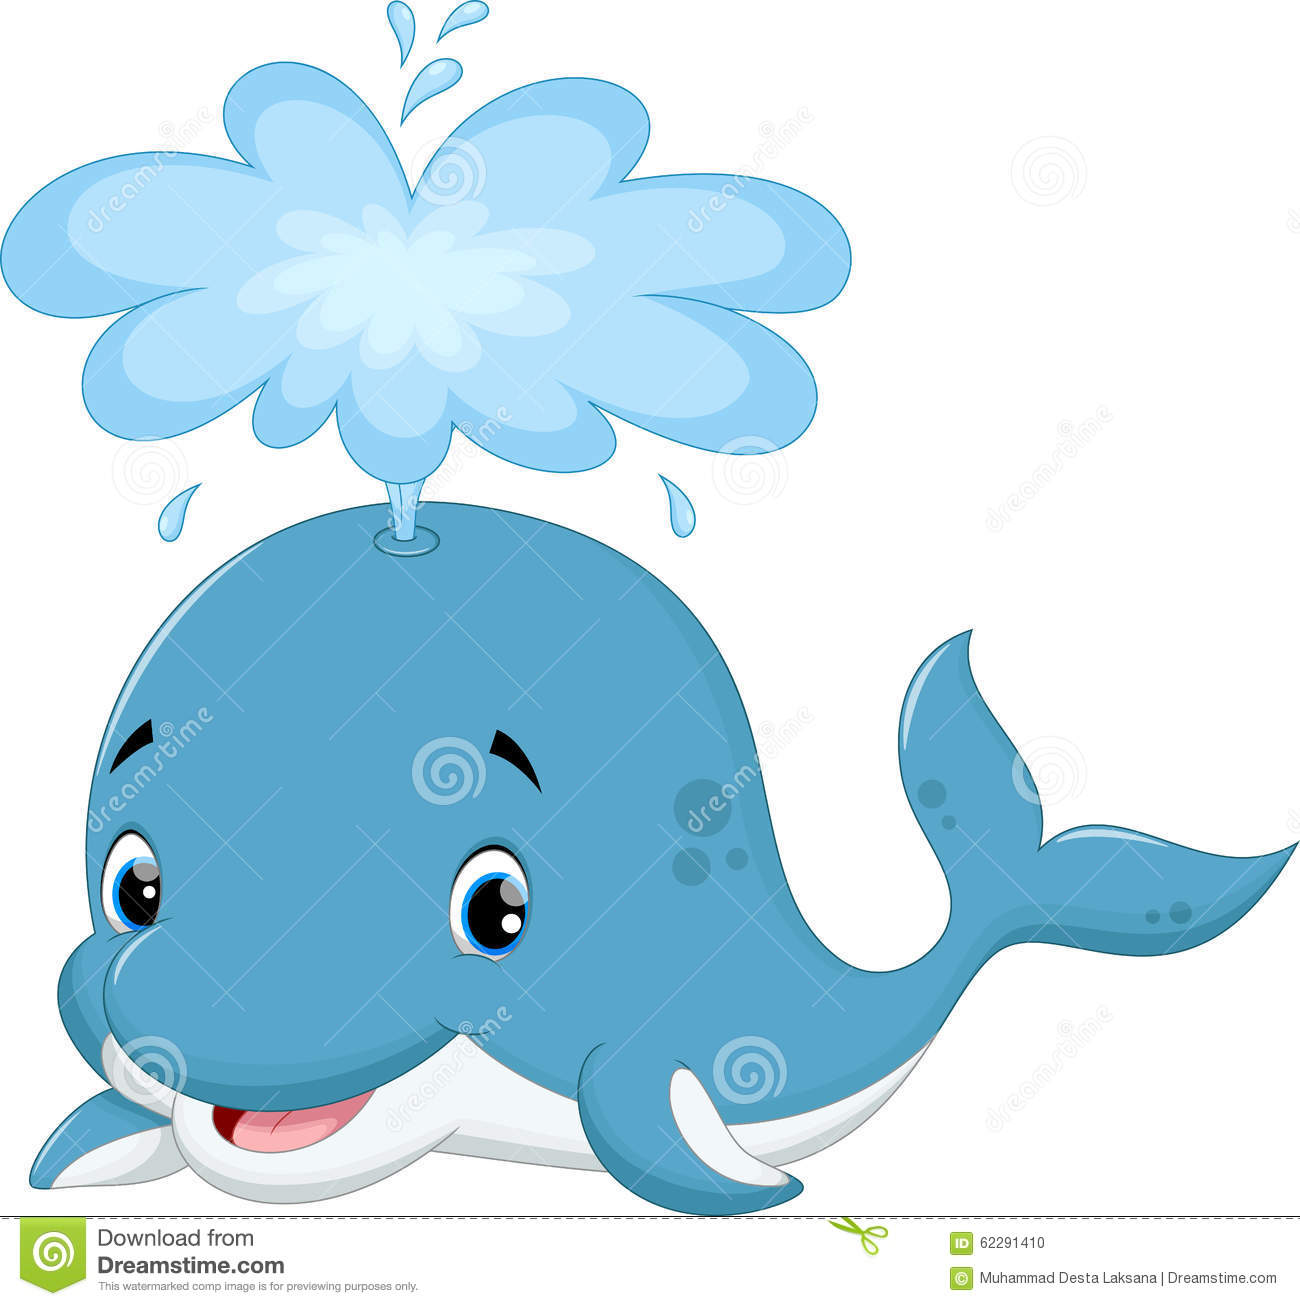 Cute Whale Cartoon Stock Illustration - Image: 62291410